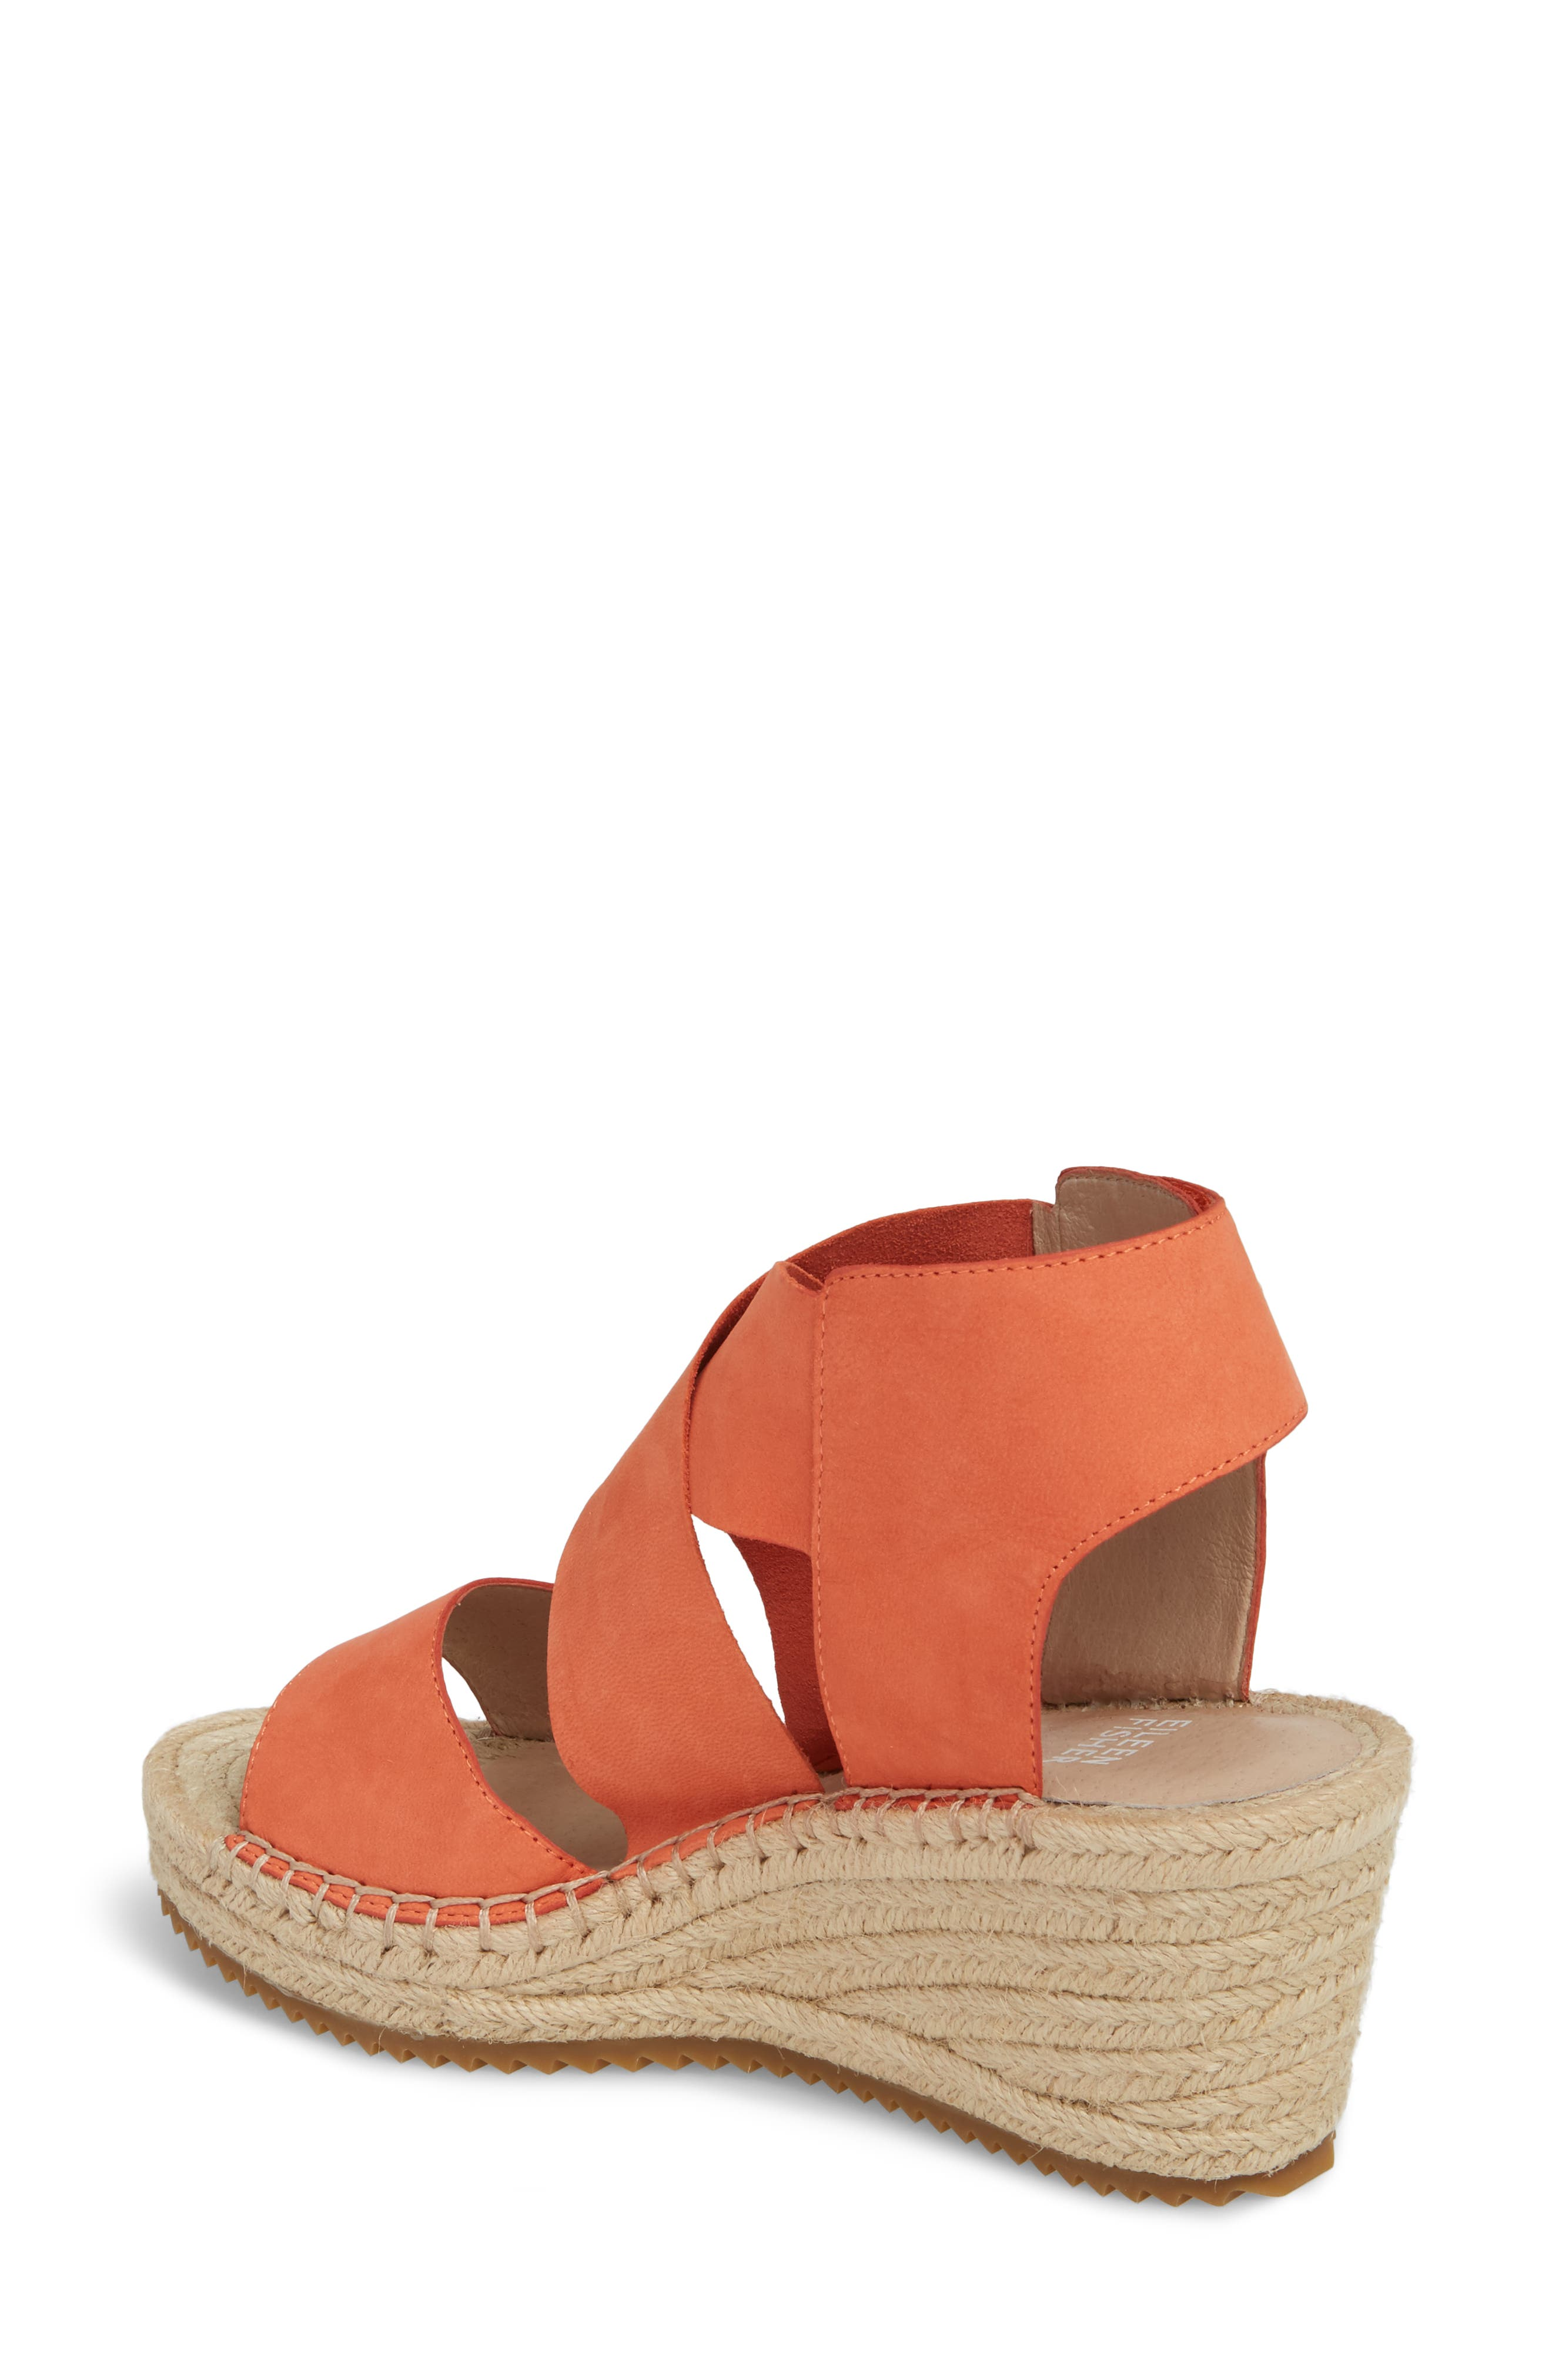 'Willow' Espadrille Wedge Sandal,                             Alternate thumbnail 2, color,                             Persimmon Leather